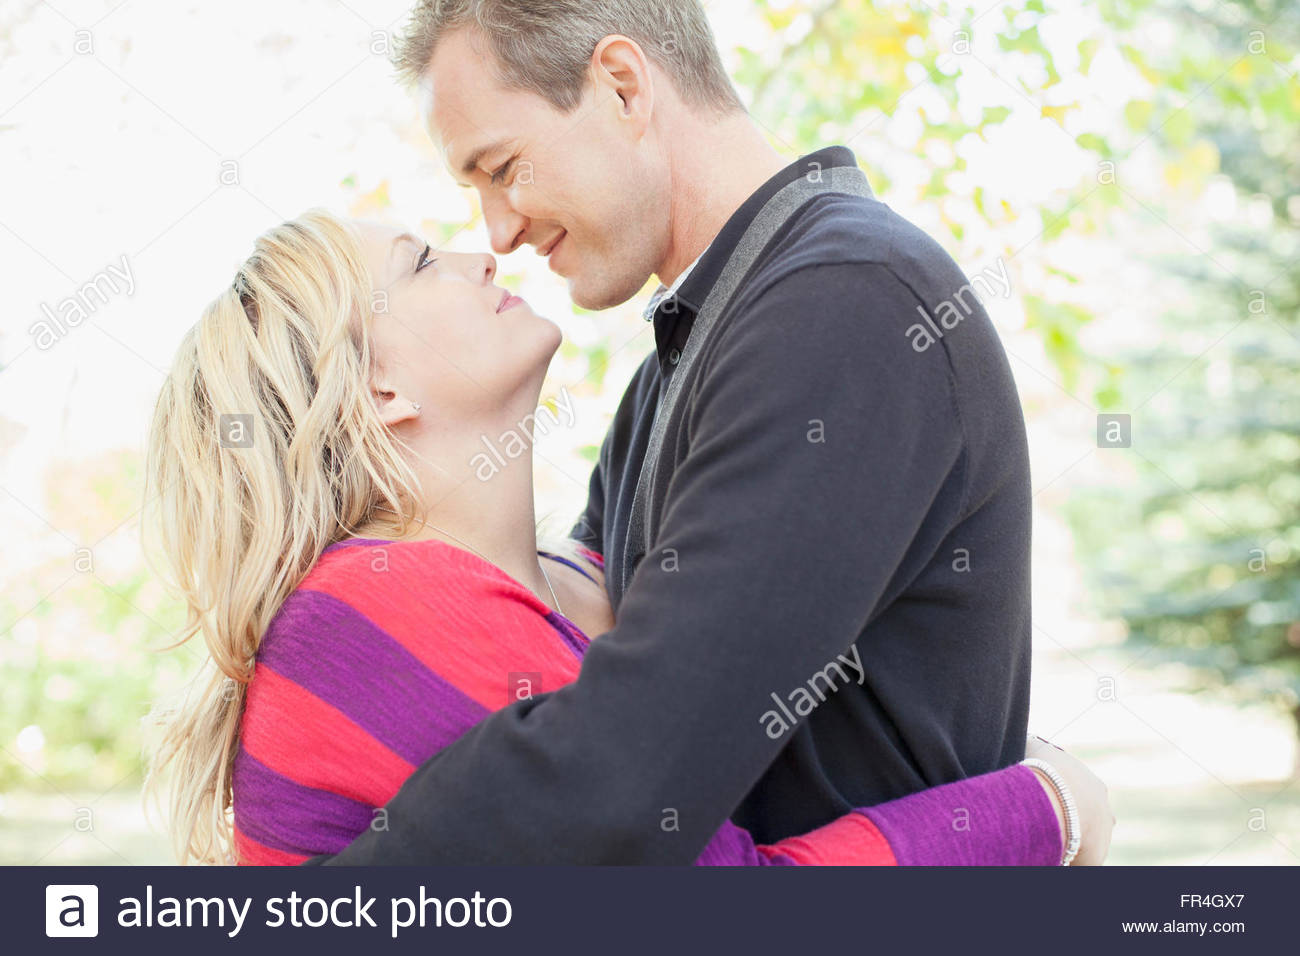 Husband and wife gazing into each others eyes. - Stock Image